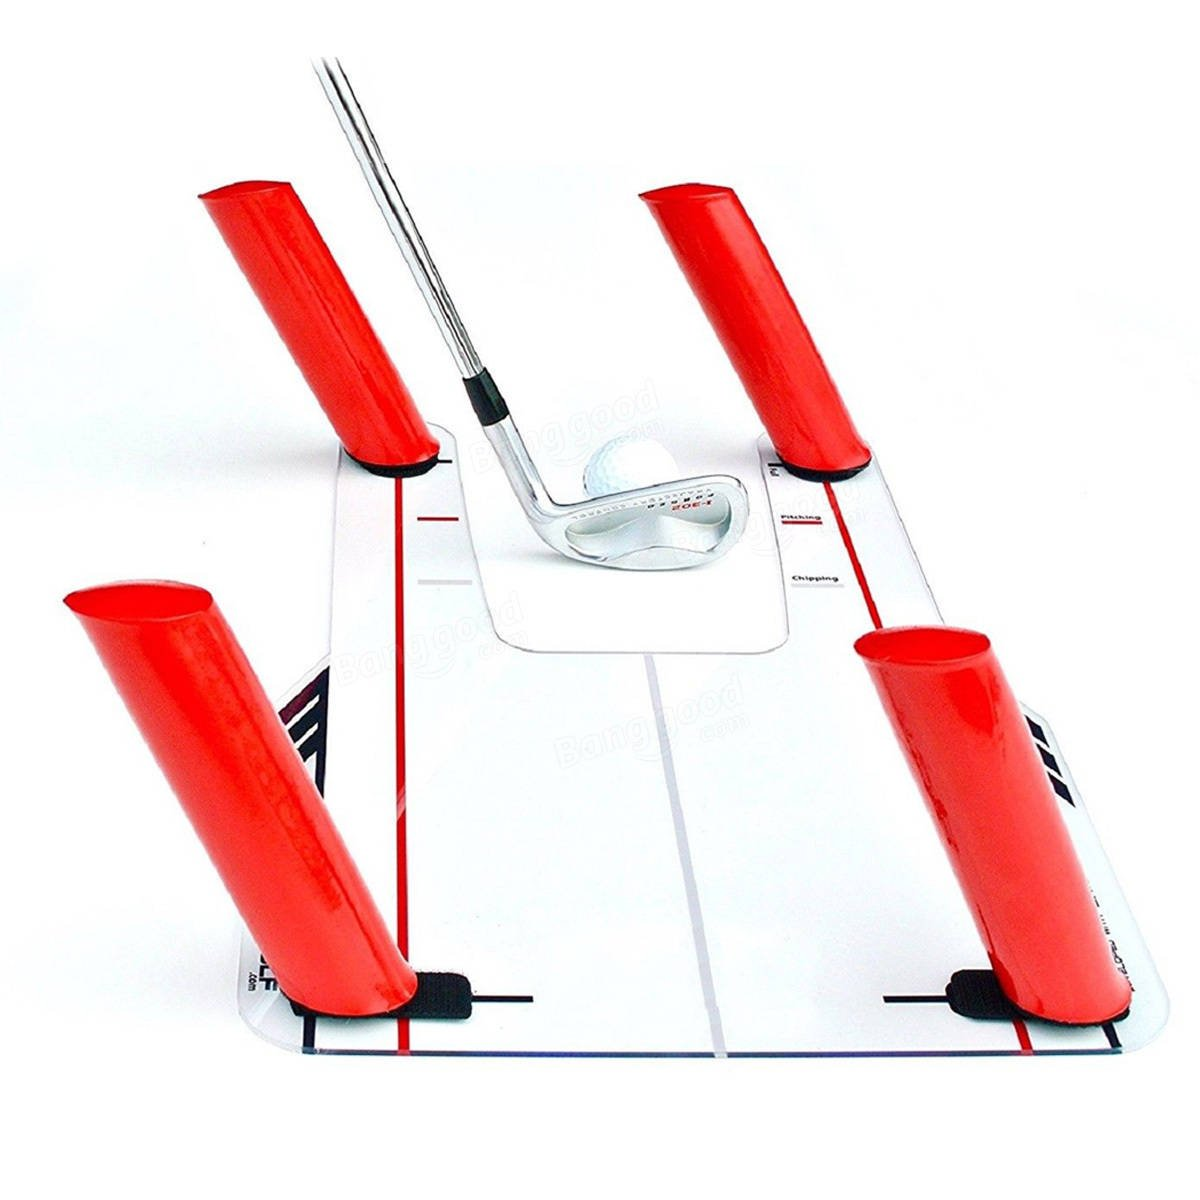 Resource Academy Golf Swing Training Set - Improve Swing Path - Baseboard Plus 5 Rods by Resource Academy (Image #1)